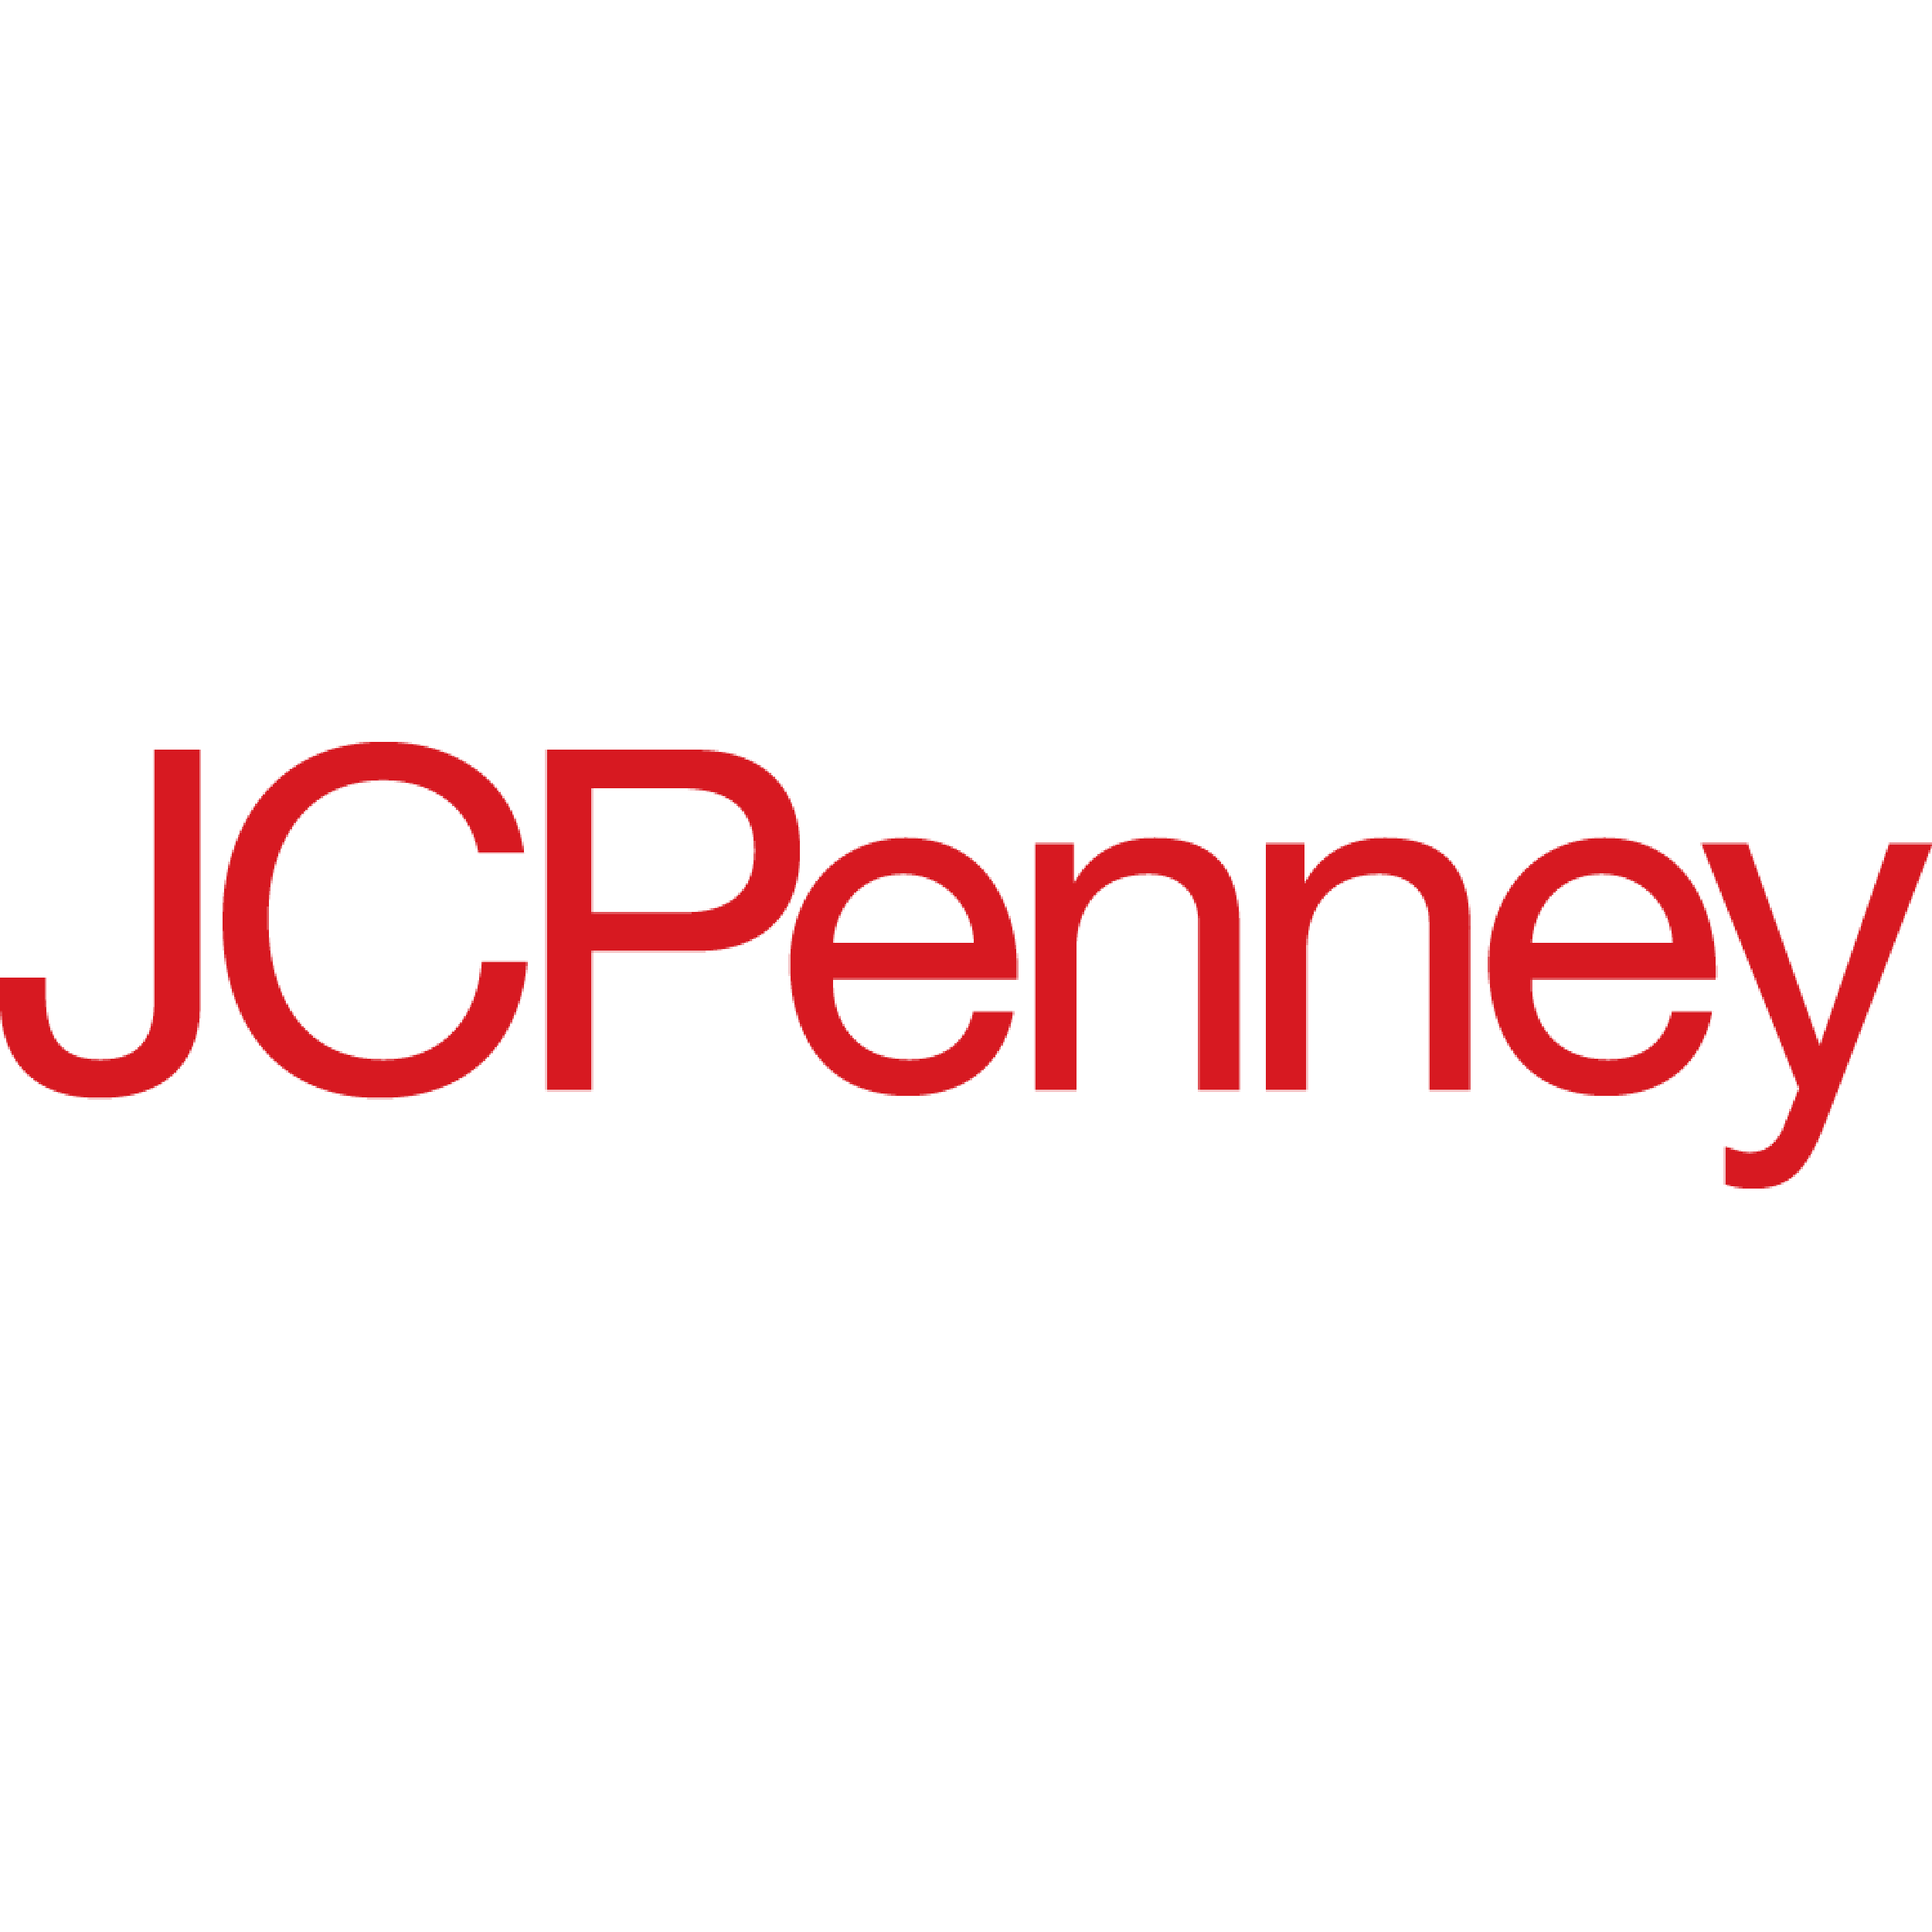 JCPenney - Wenatchee, WA - Department Stores